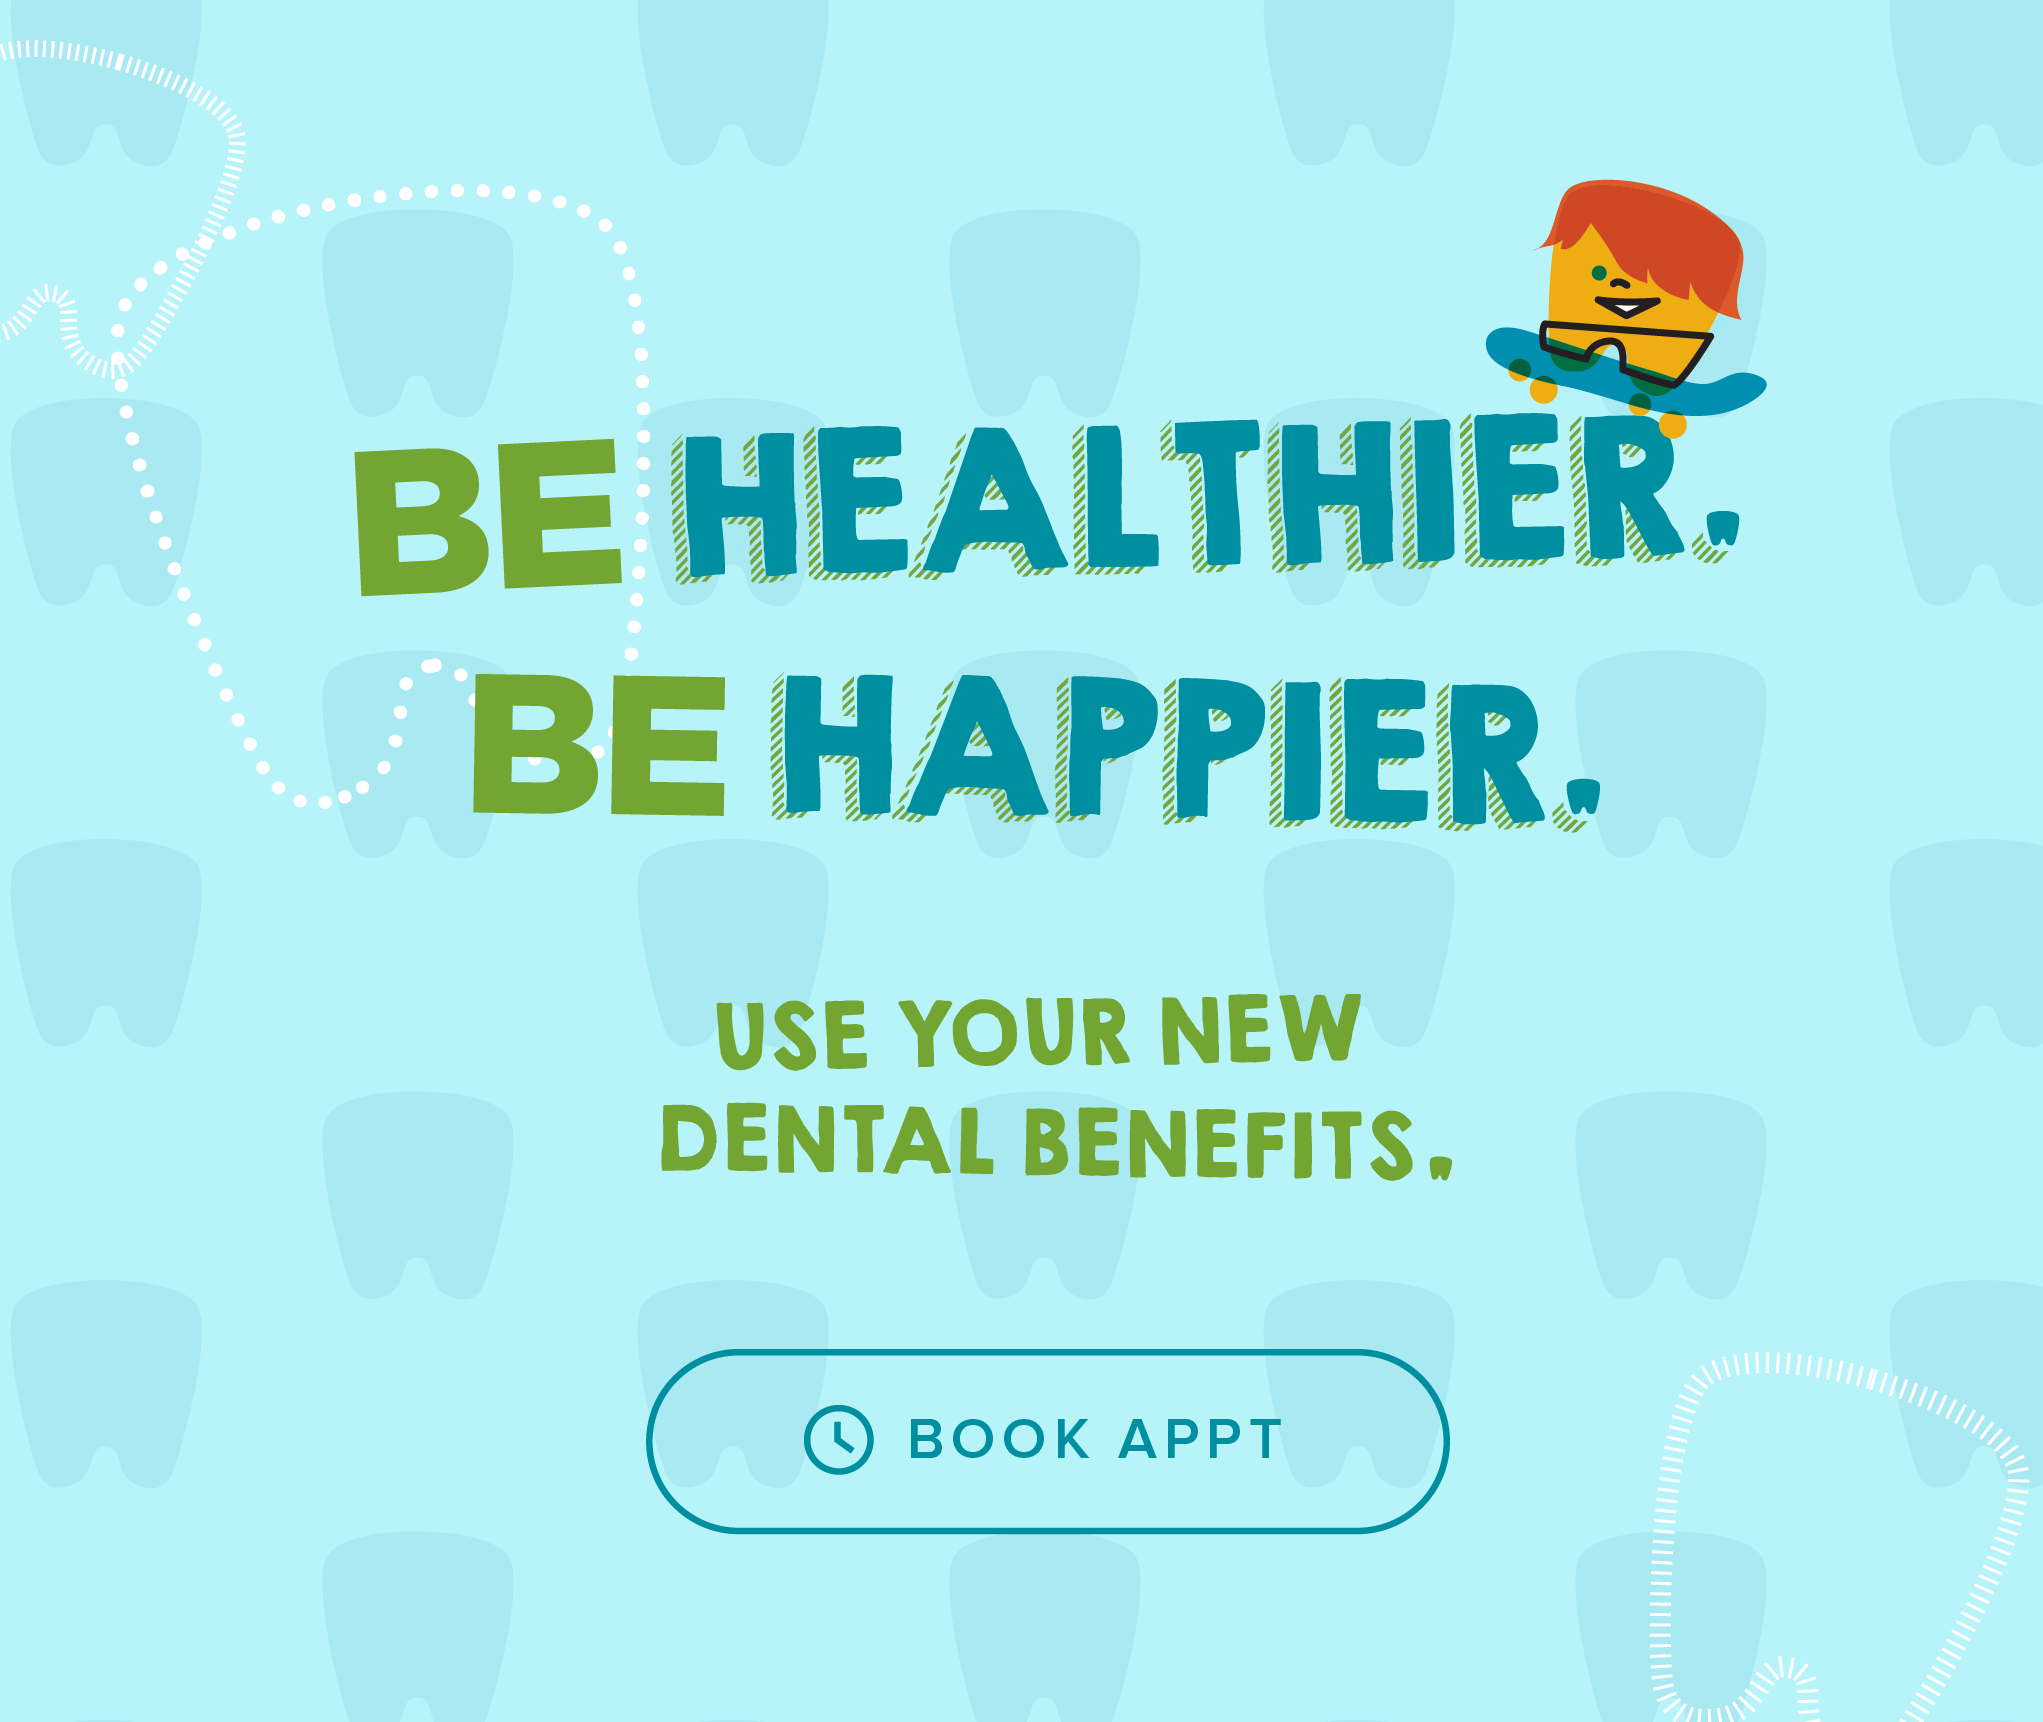 Be Healthier. Be Happier. Use your new dental benefits. - My Kid's Dentist